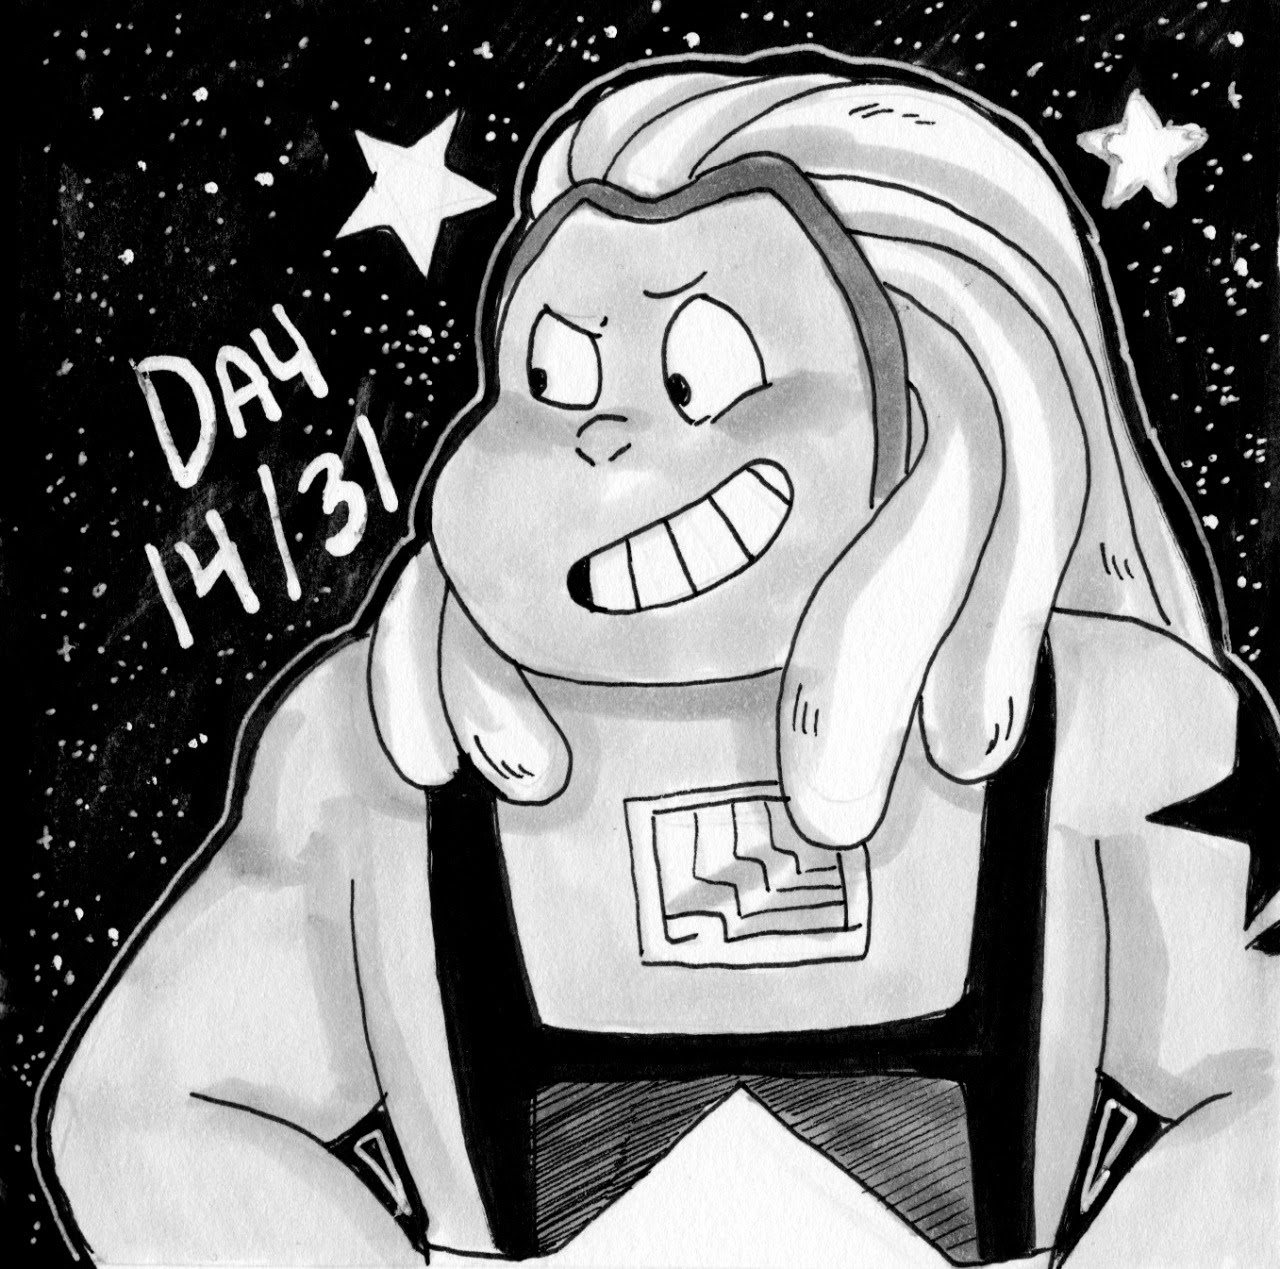 Day 14!